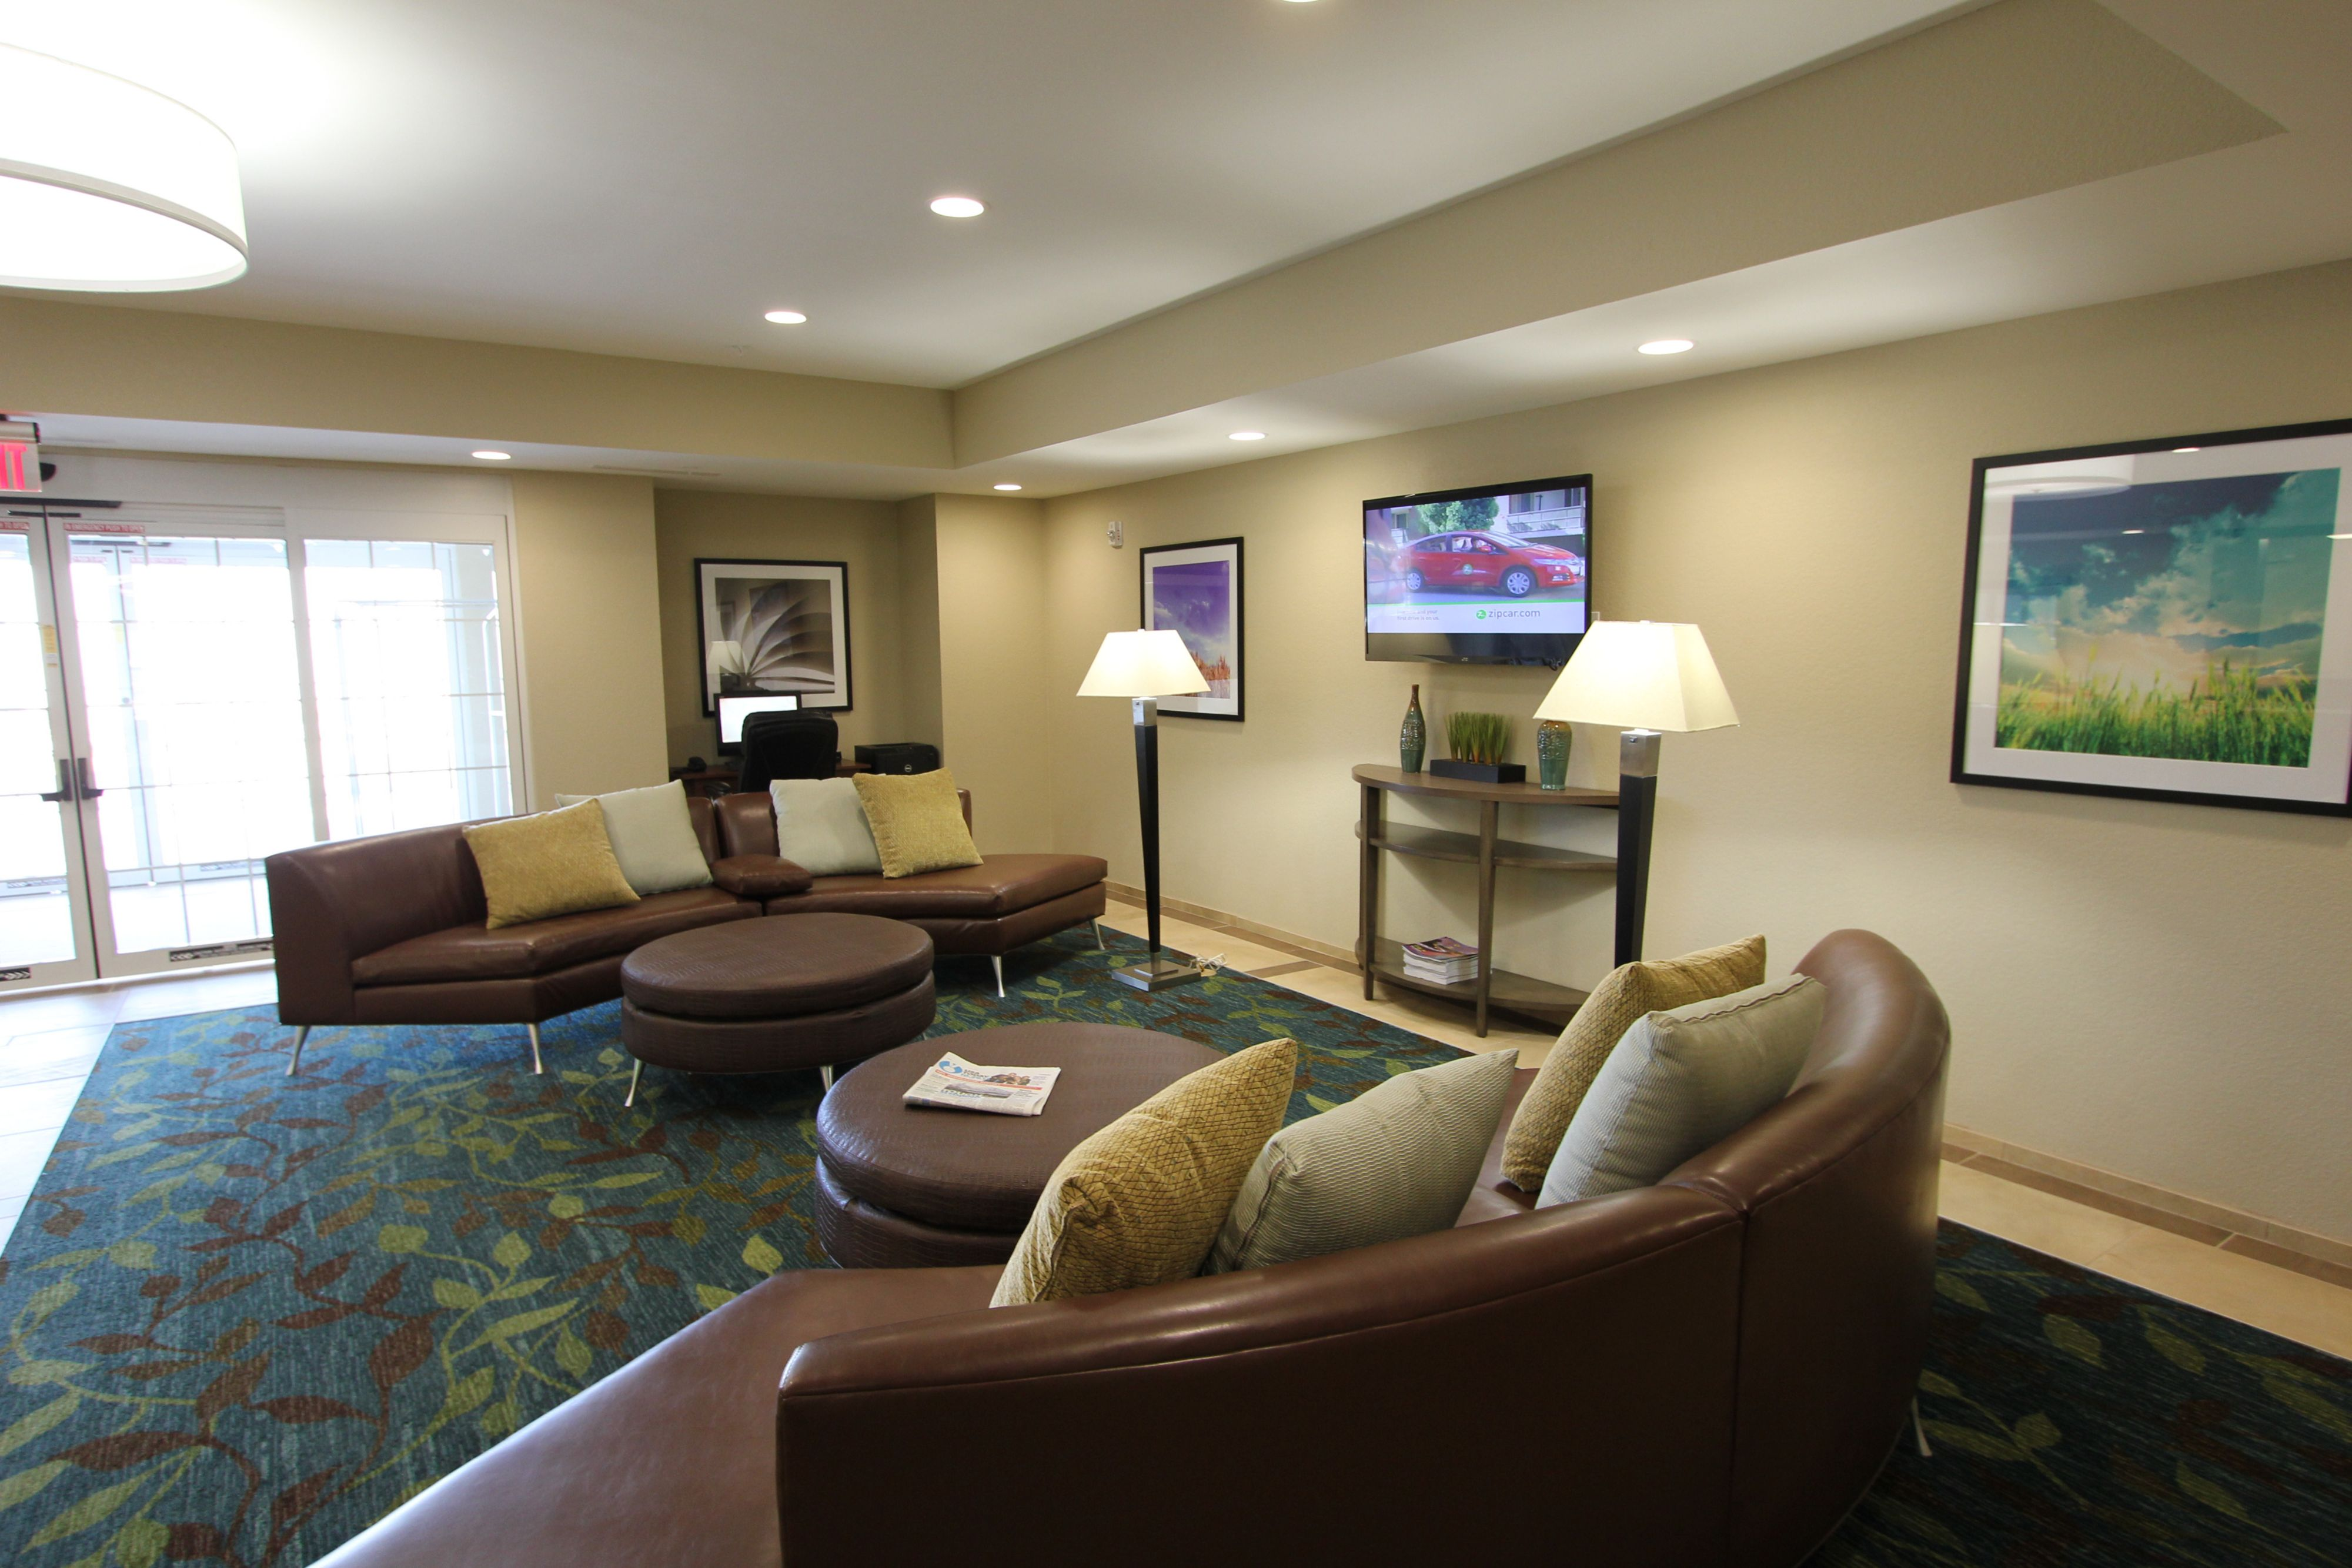 Candlewood Suites Greenville image 3